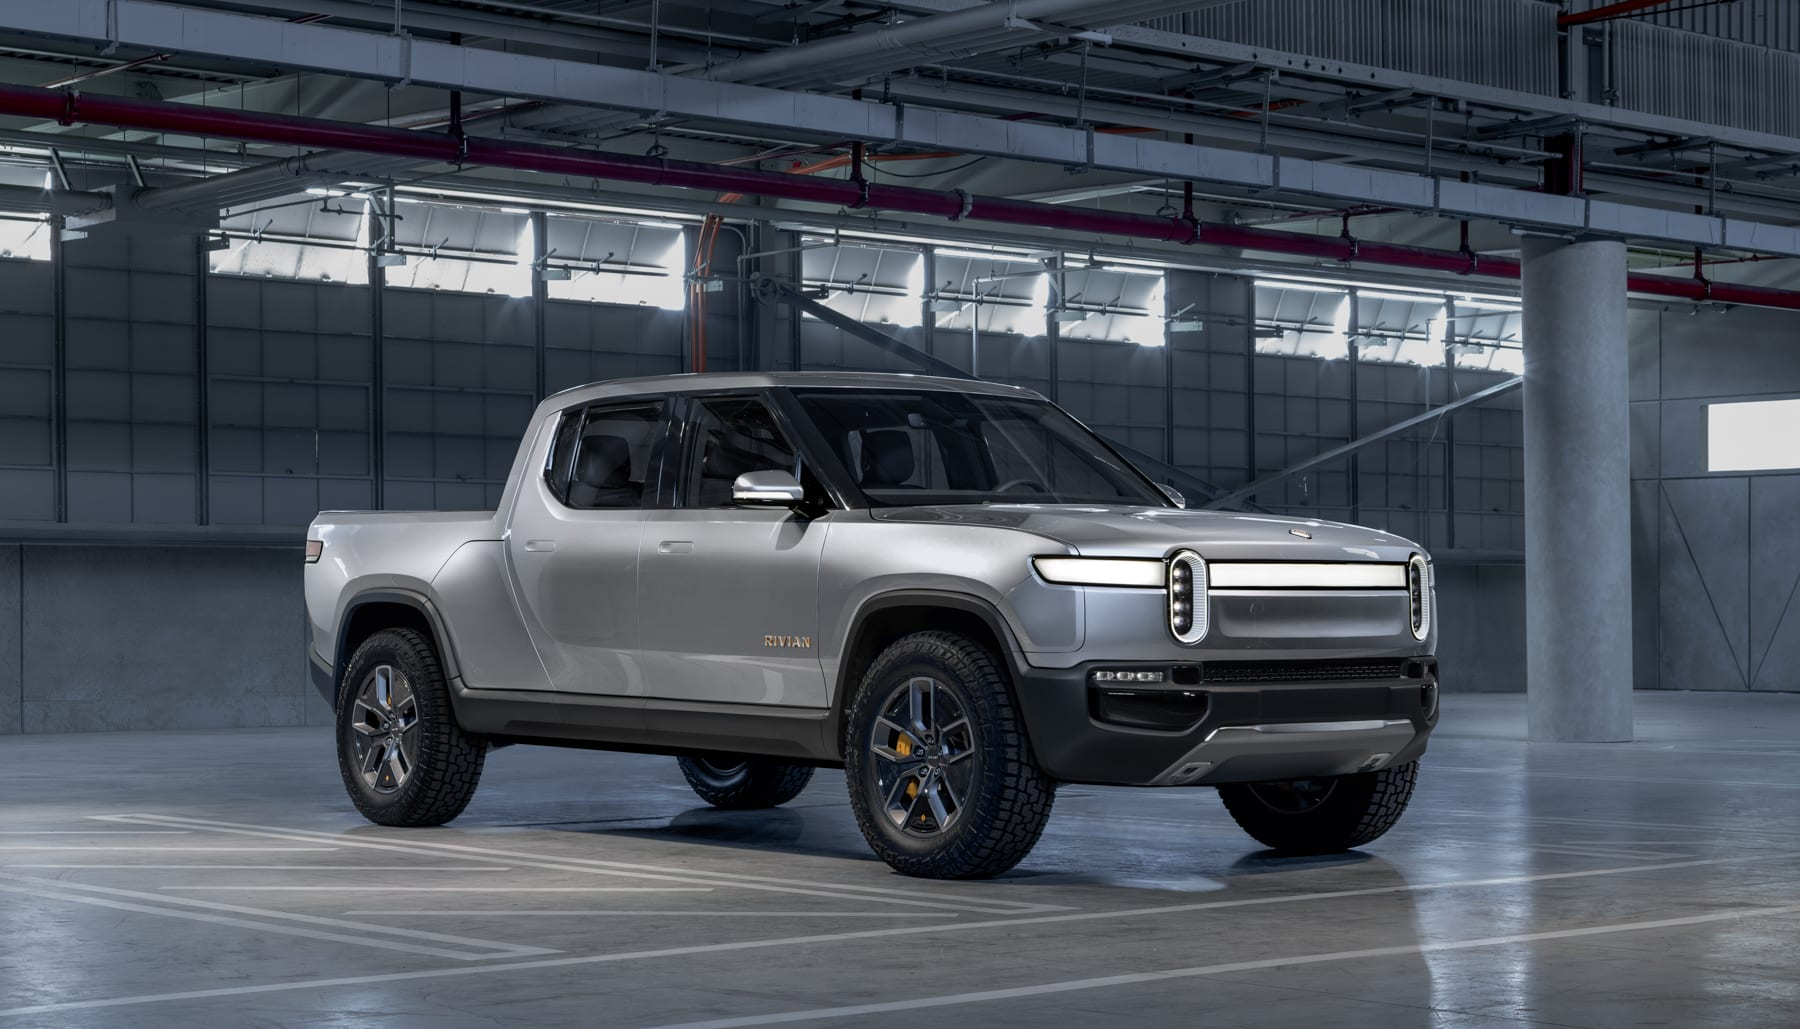 So It S No Surprise That Automotive Startup Rivian Has Unveiled One Of Its Own The R1s More Exciting Is Company Electron Ed Pickup Truck